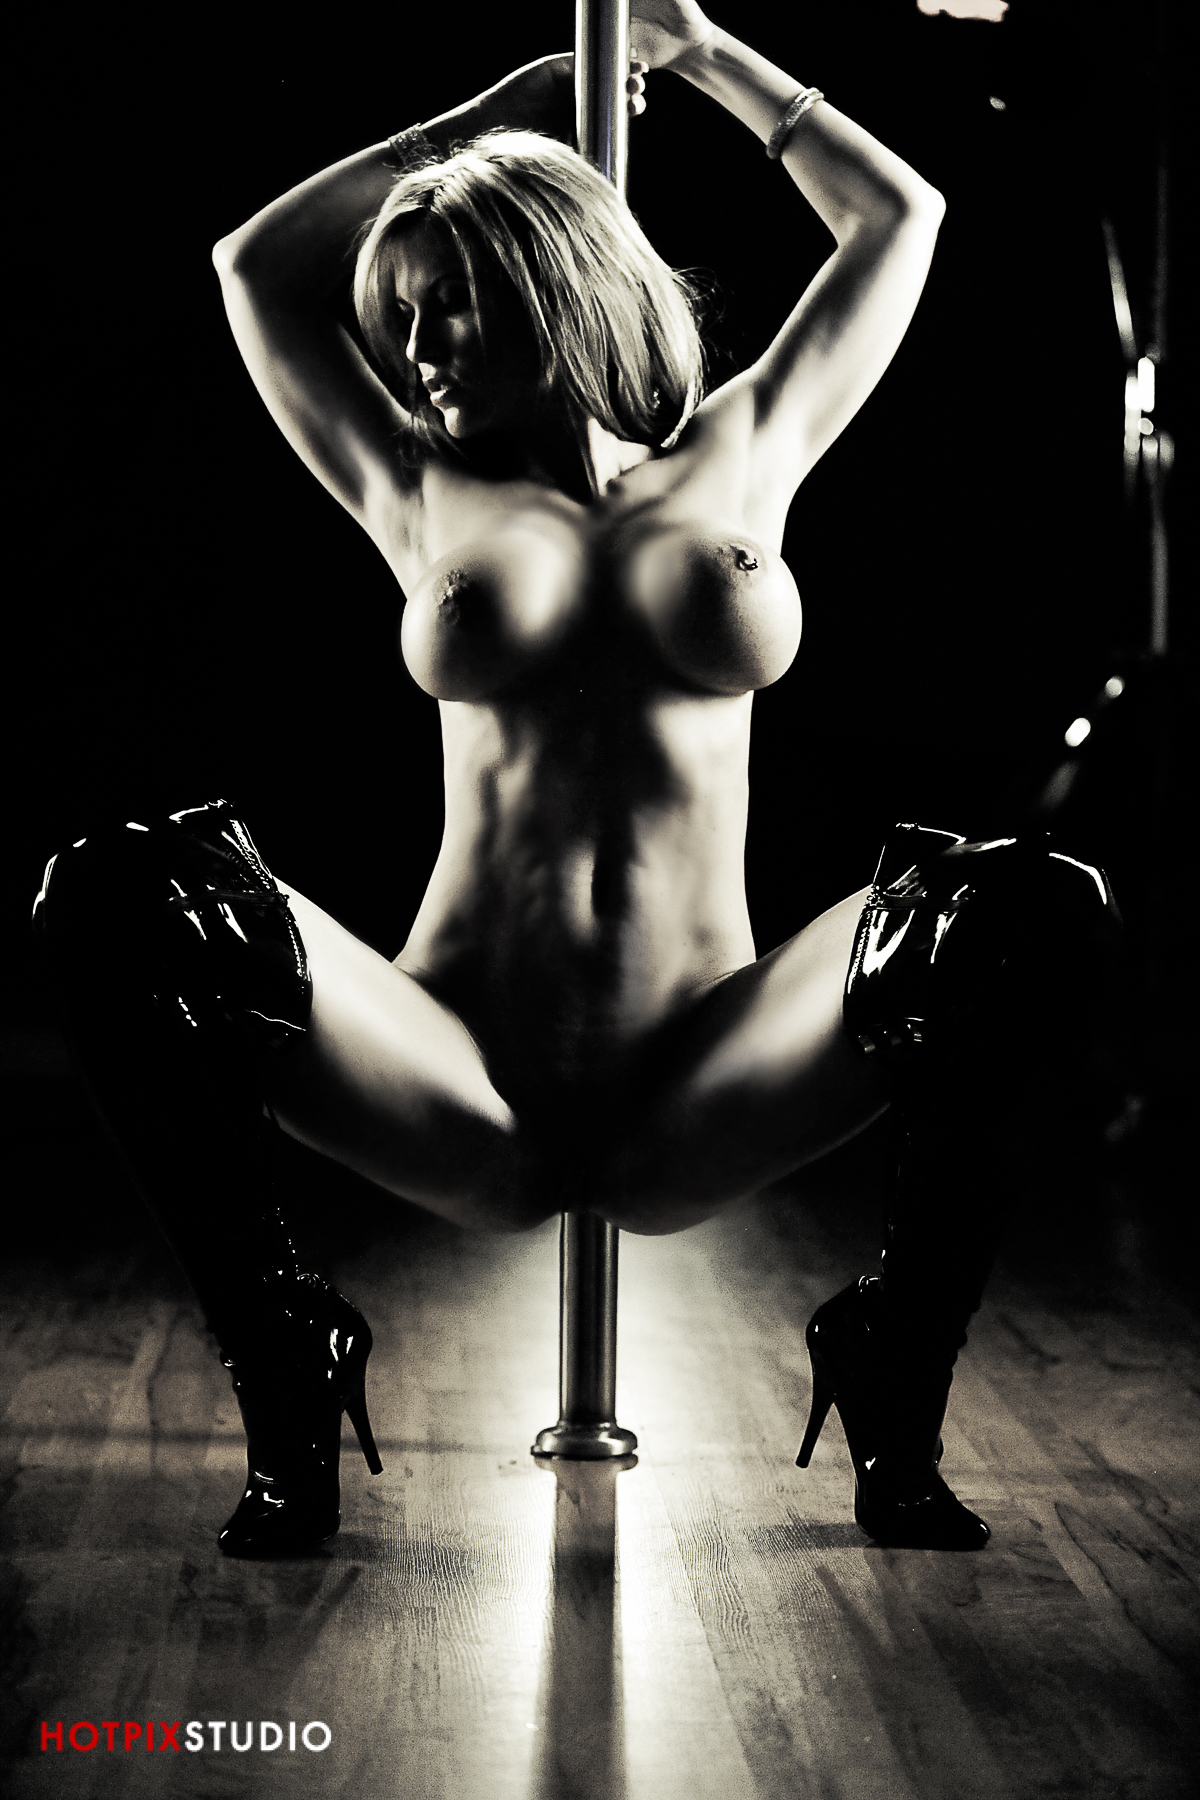 dominatrix nude photography melbourne